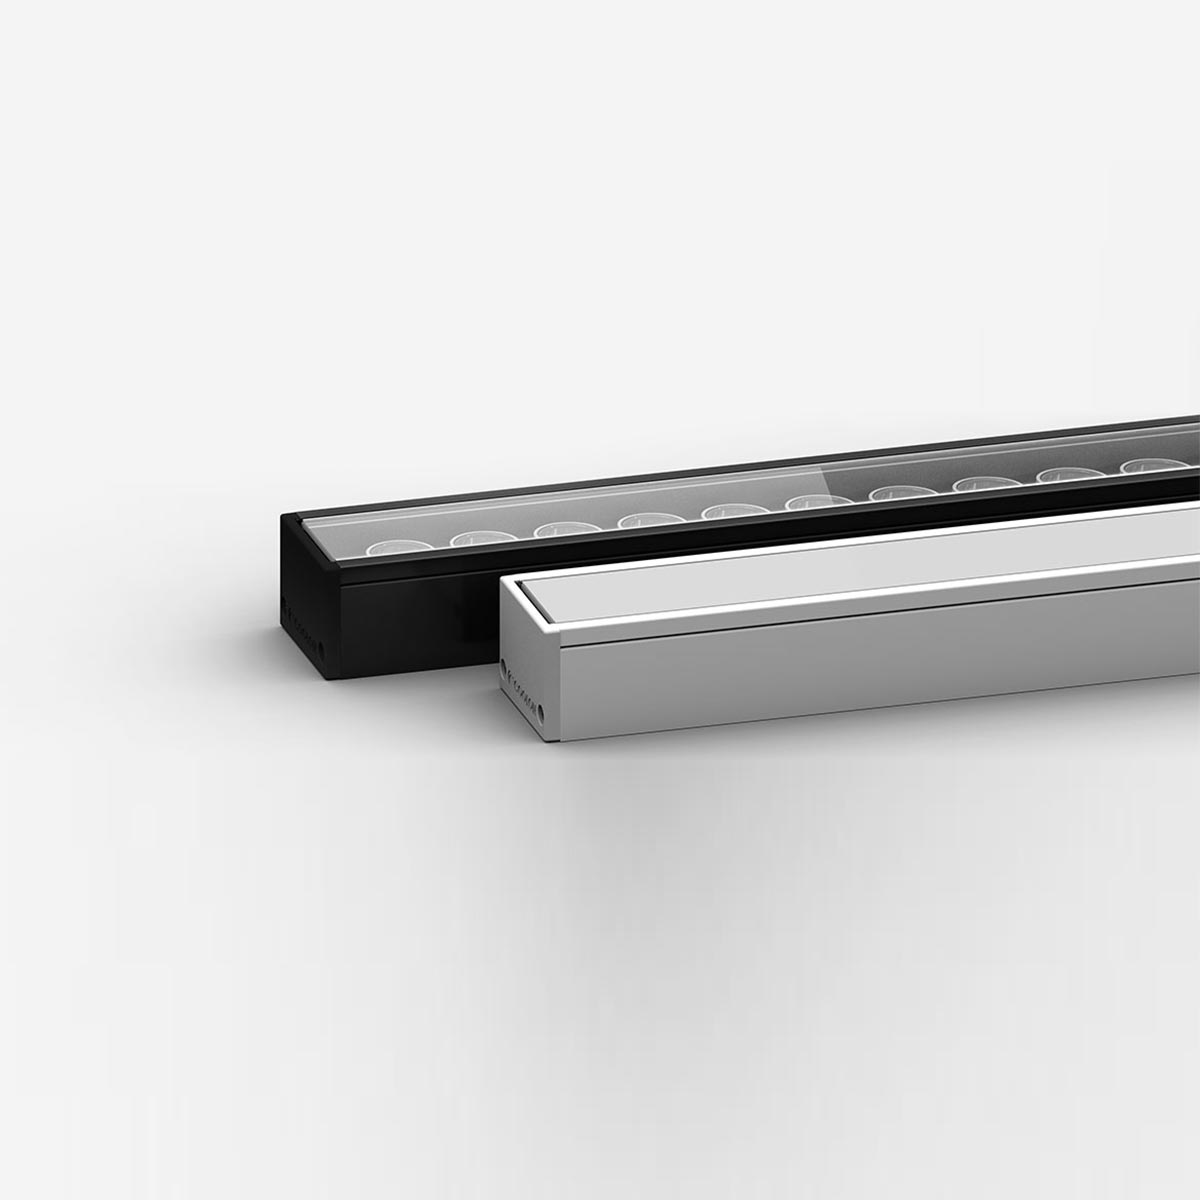 Beam -  High Power Linear Luminaire with Optical Control 60W